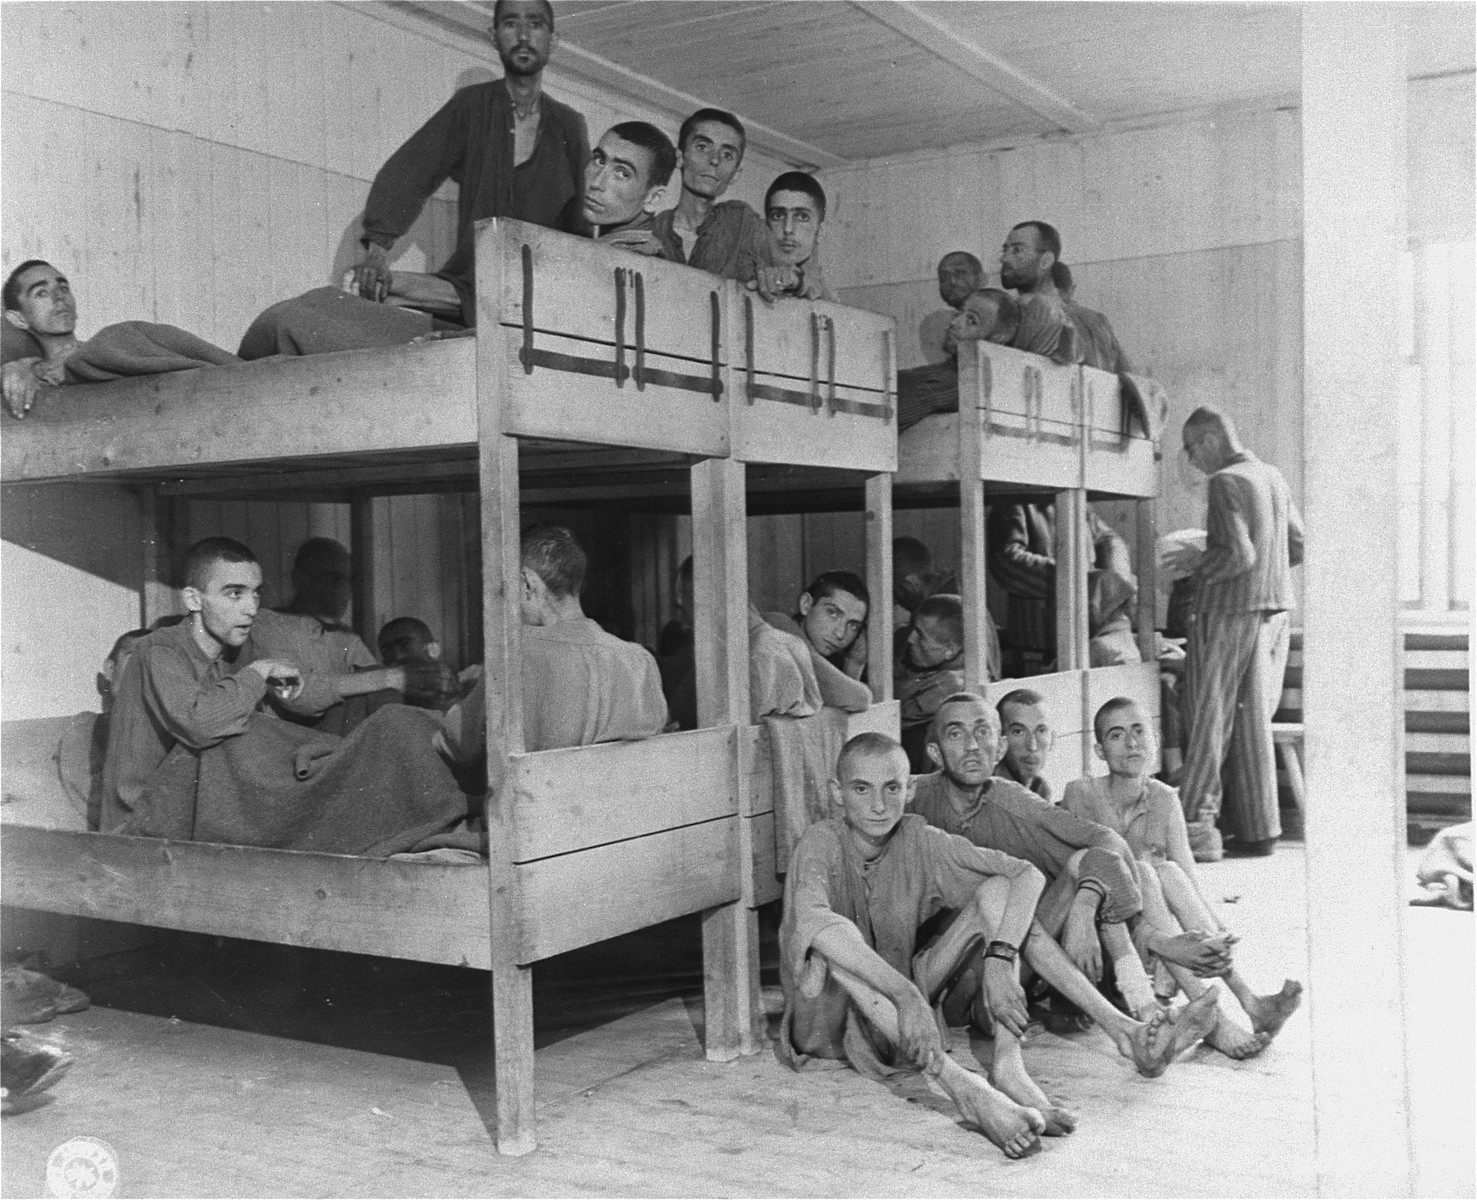 Survivors lie on bunks in the infirmary barracks for Jewish prisoners in the Ebensee concentration camp.